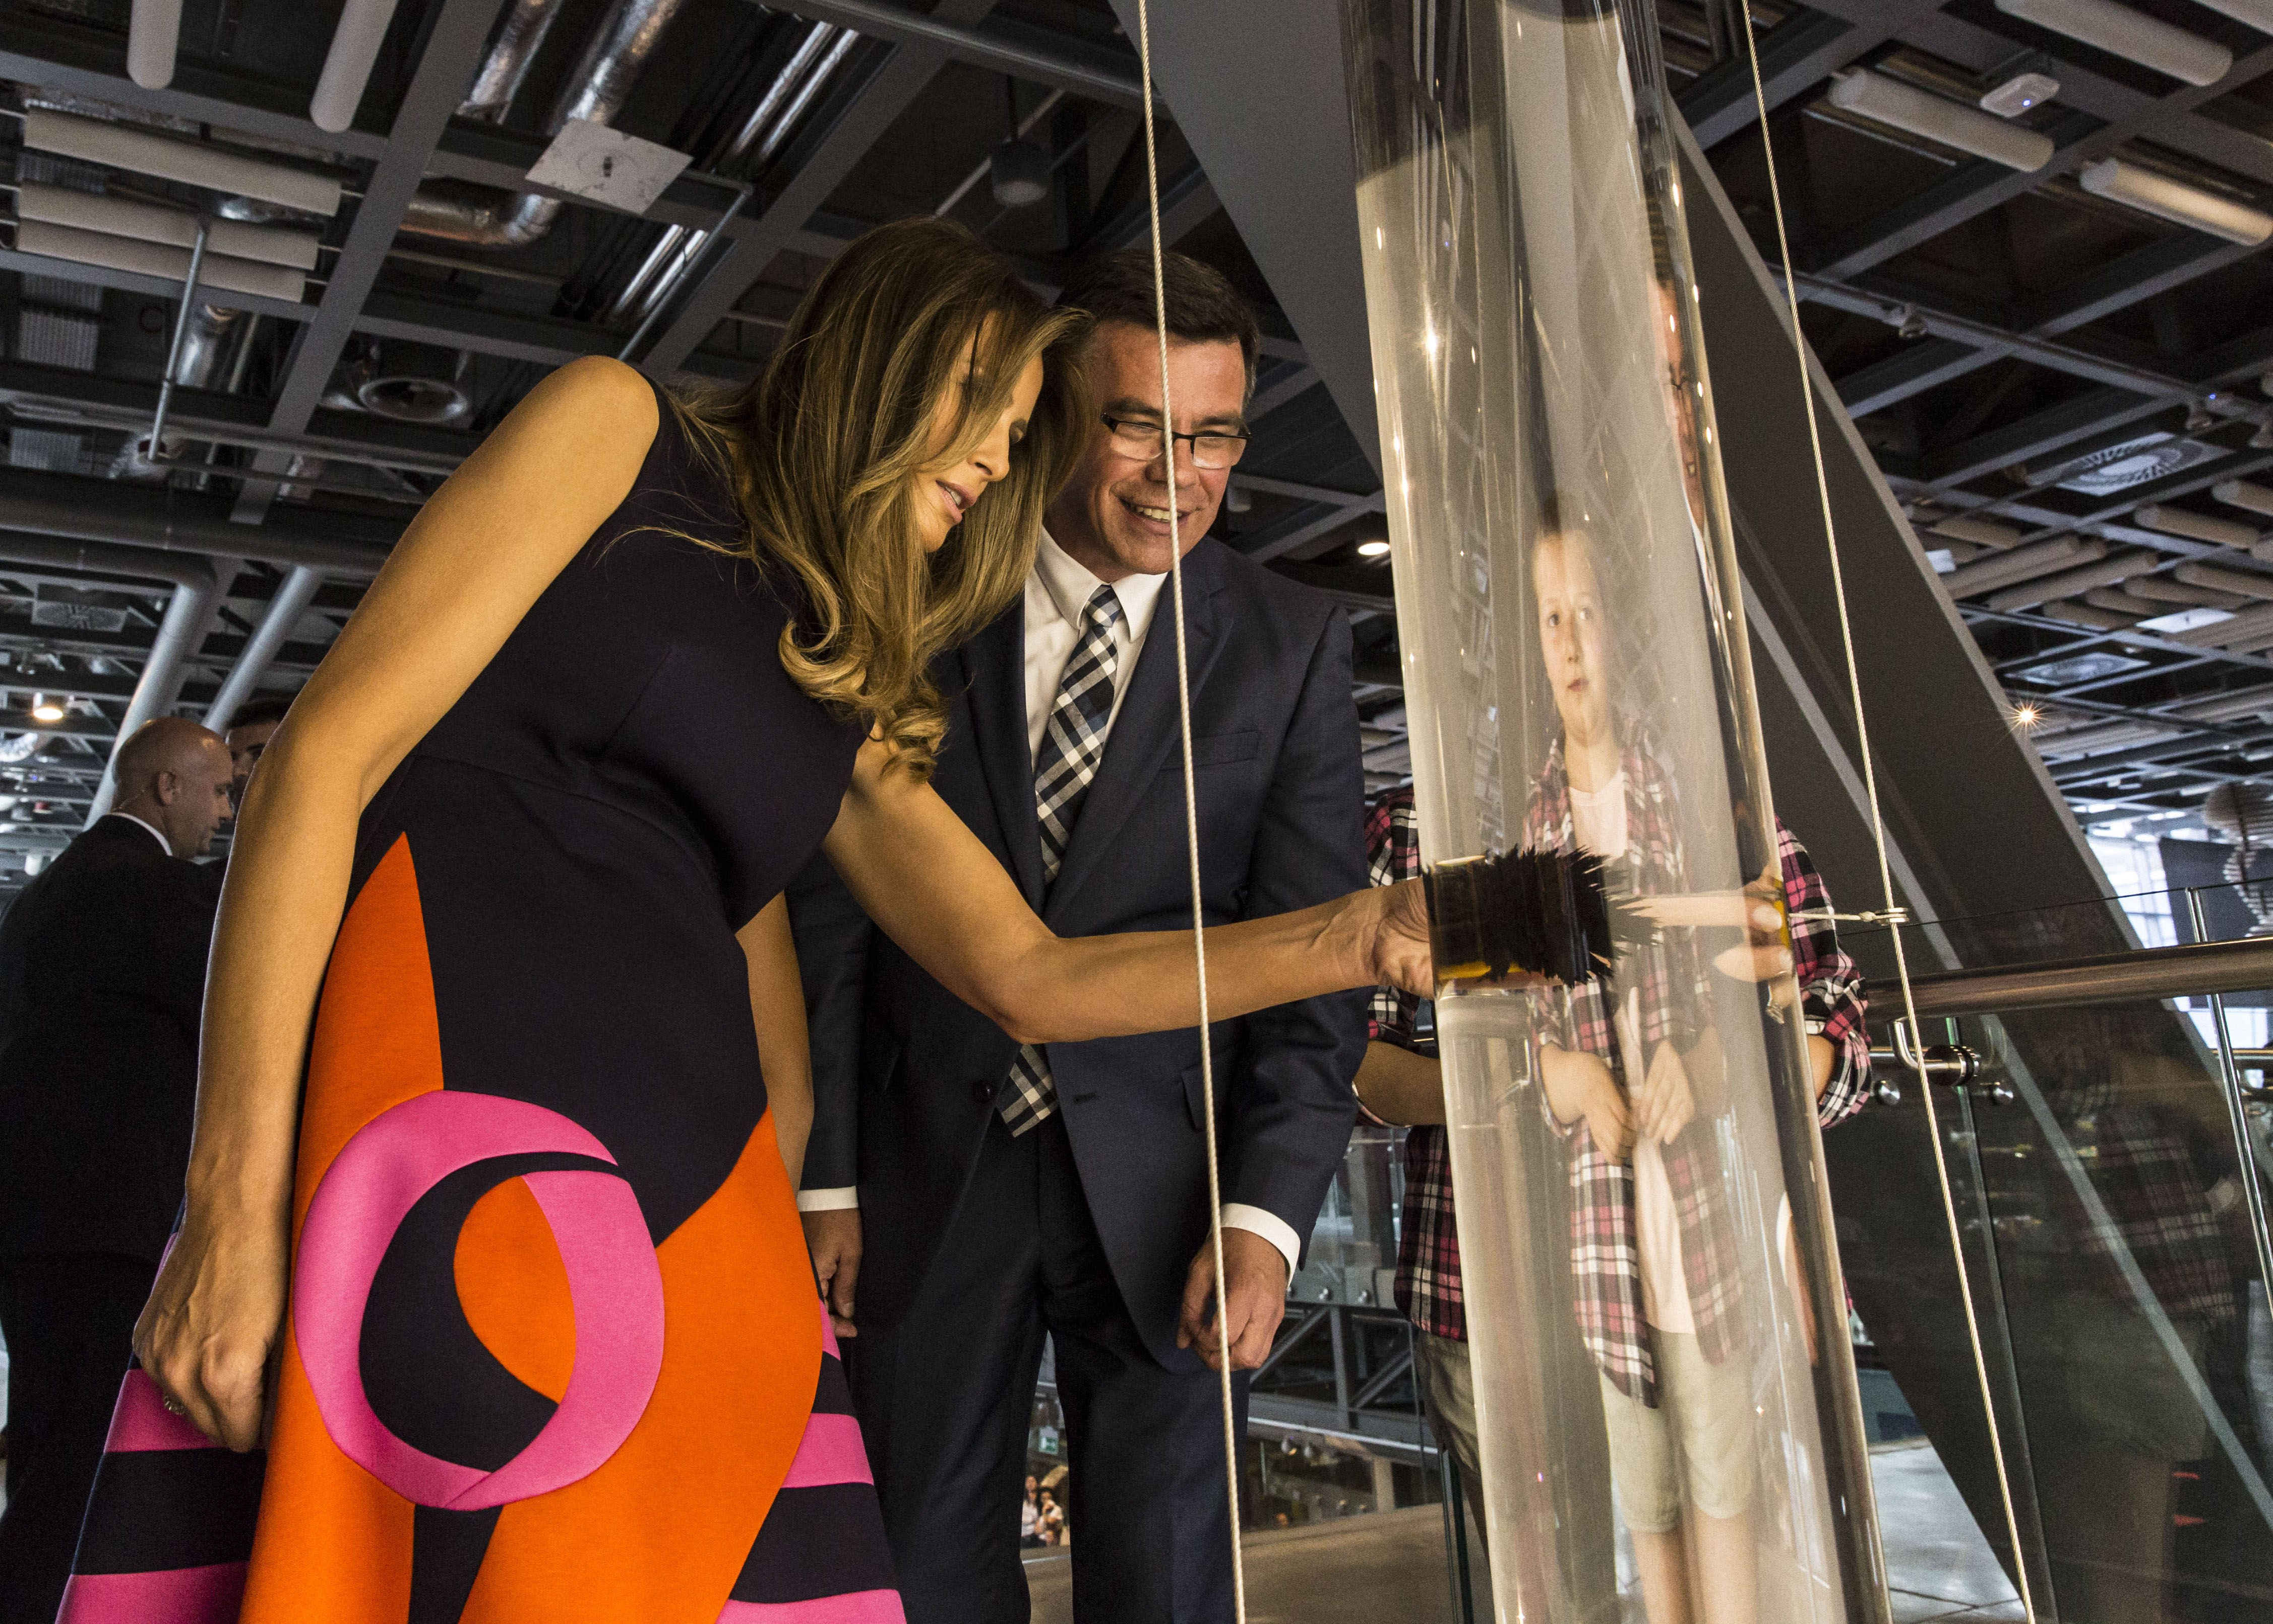 Melania Trump at the Copernicus Science Centre with Director Robert Firmhofer, 6 July 2017. Credit A. Steifer